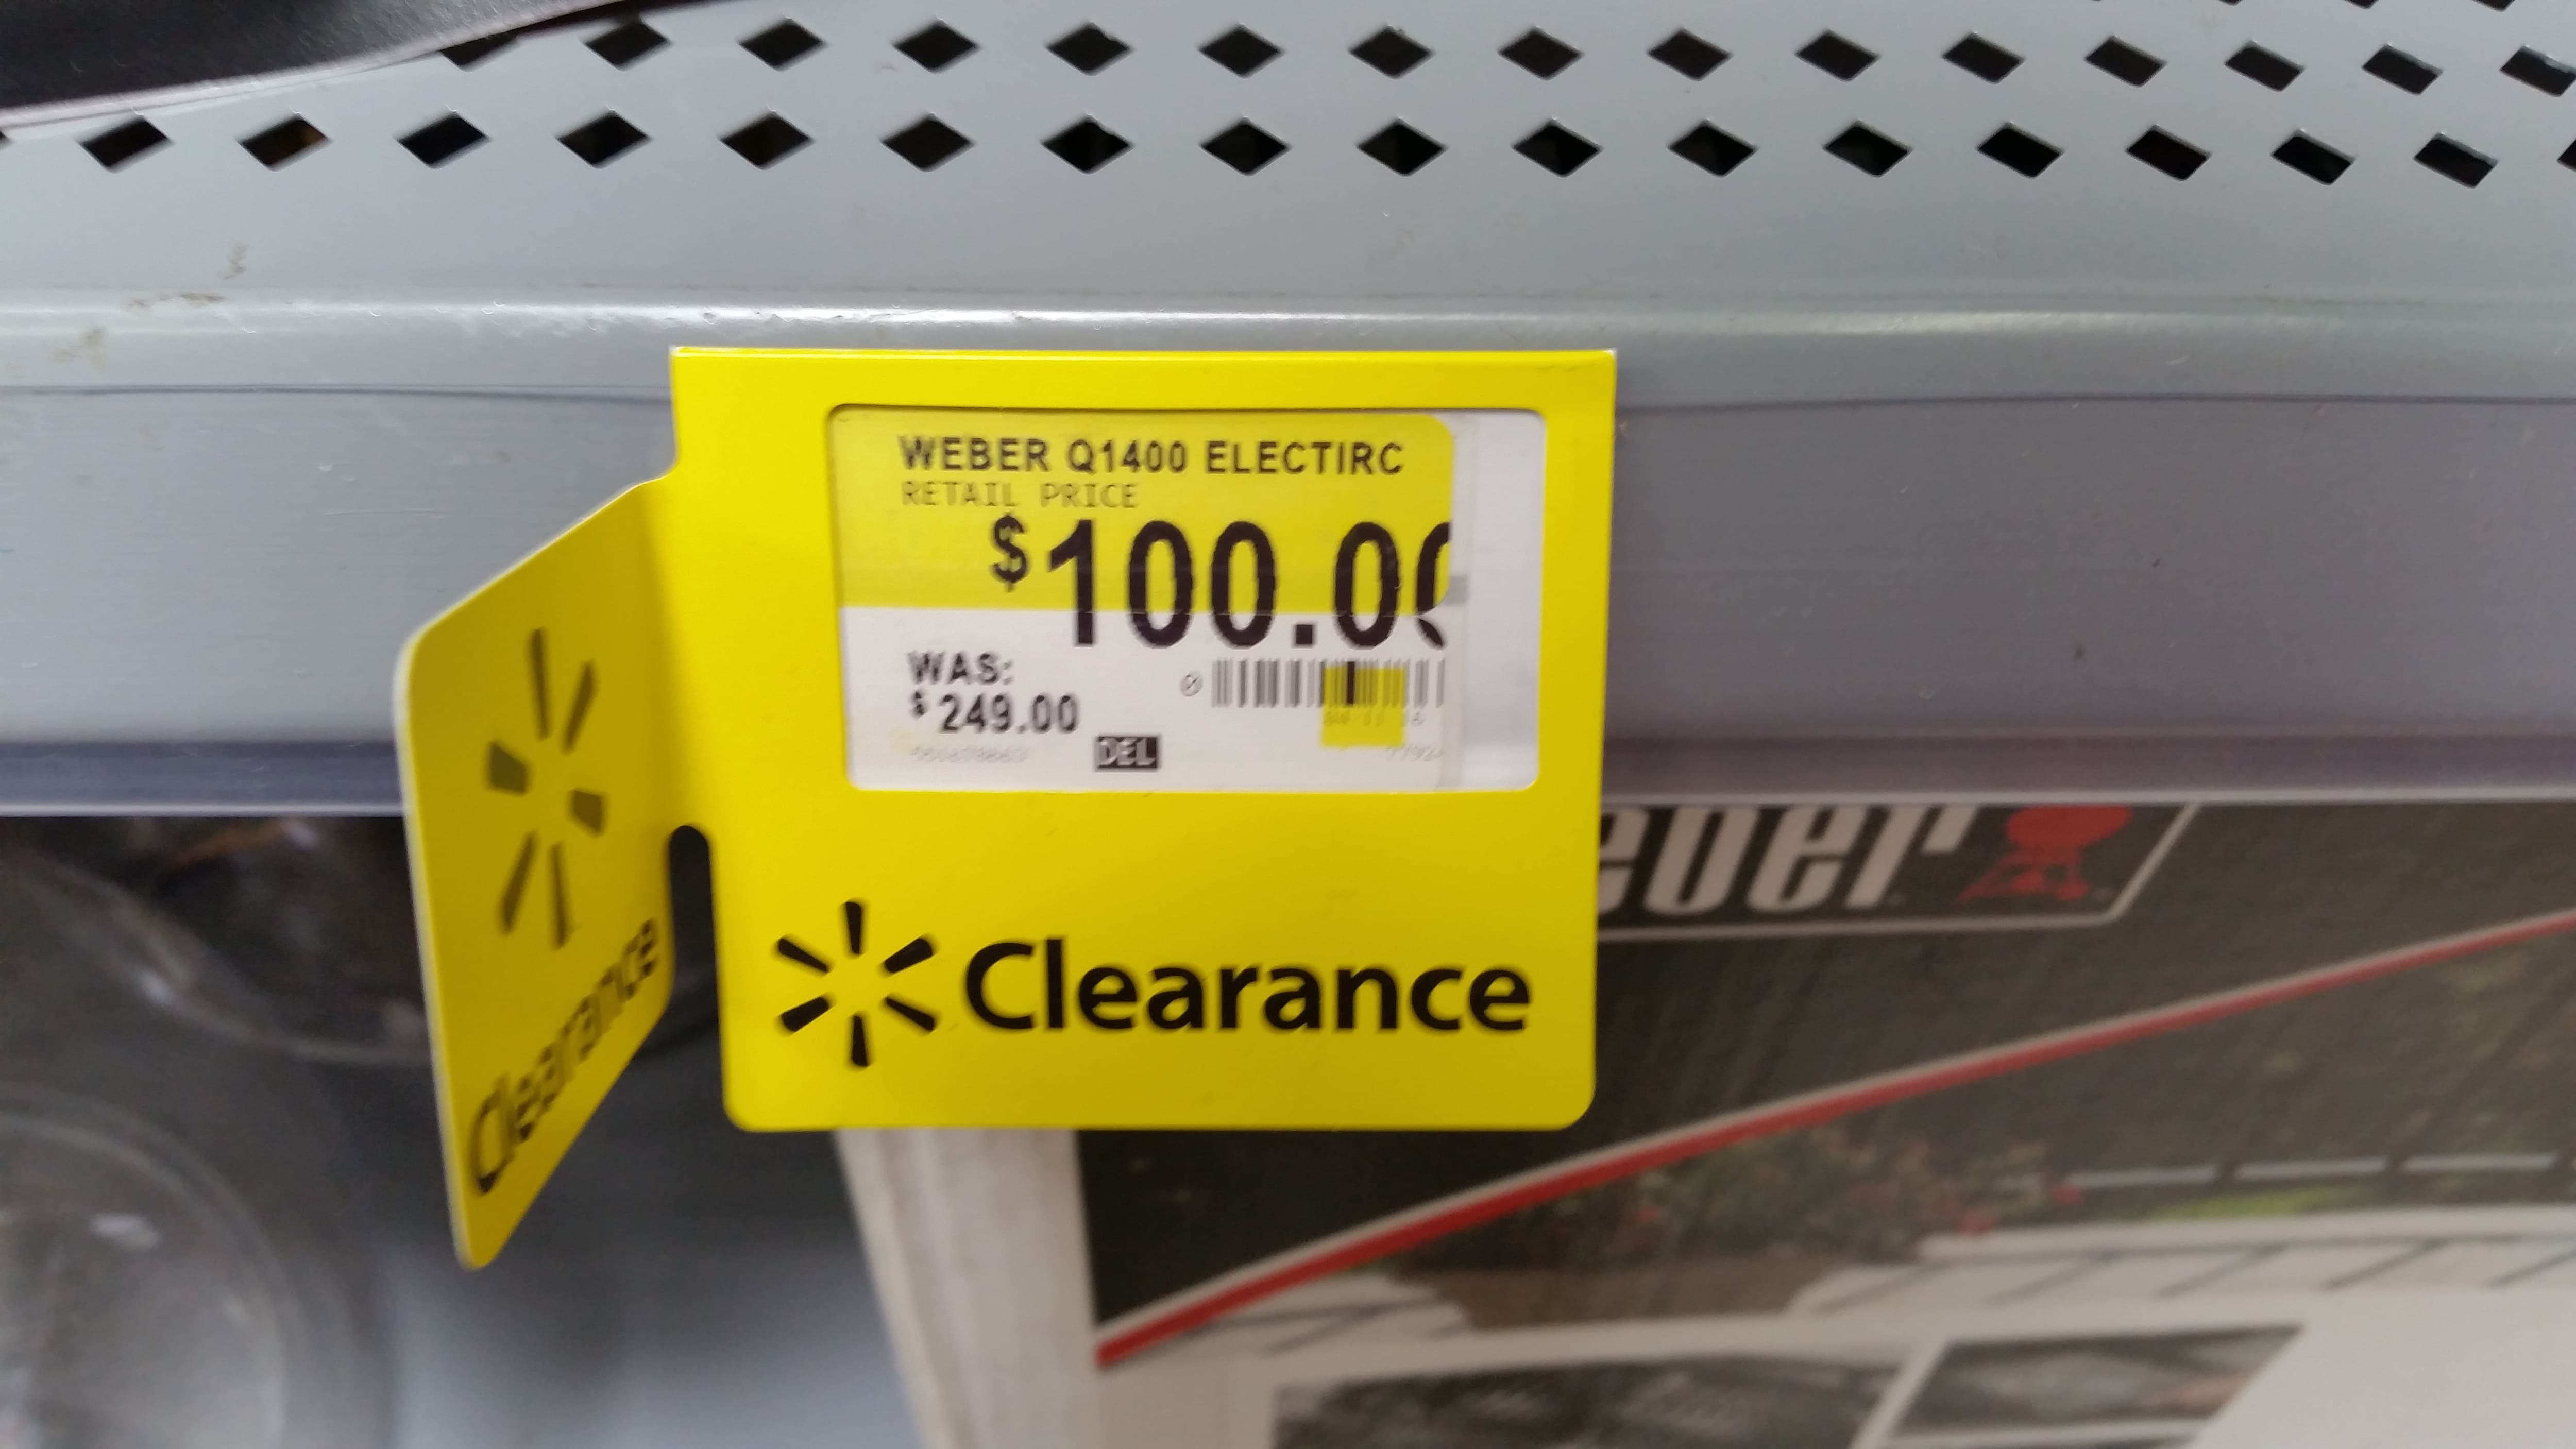 Weber Q1400 Electric Grill on clearance for $100 normally $249 YMMV